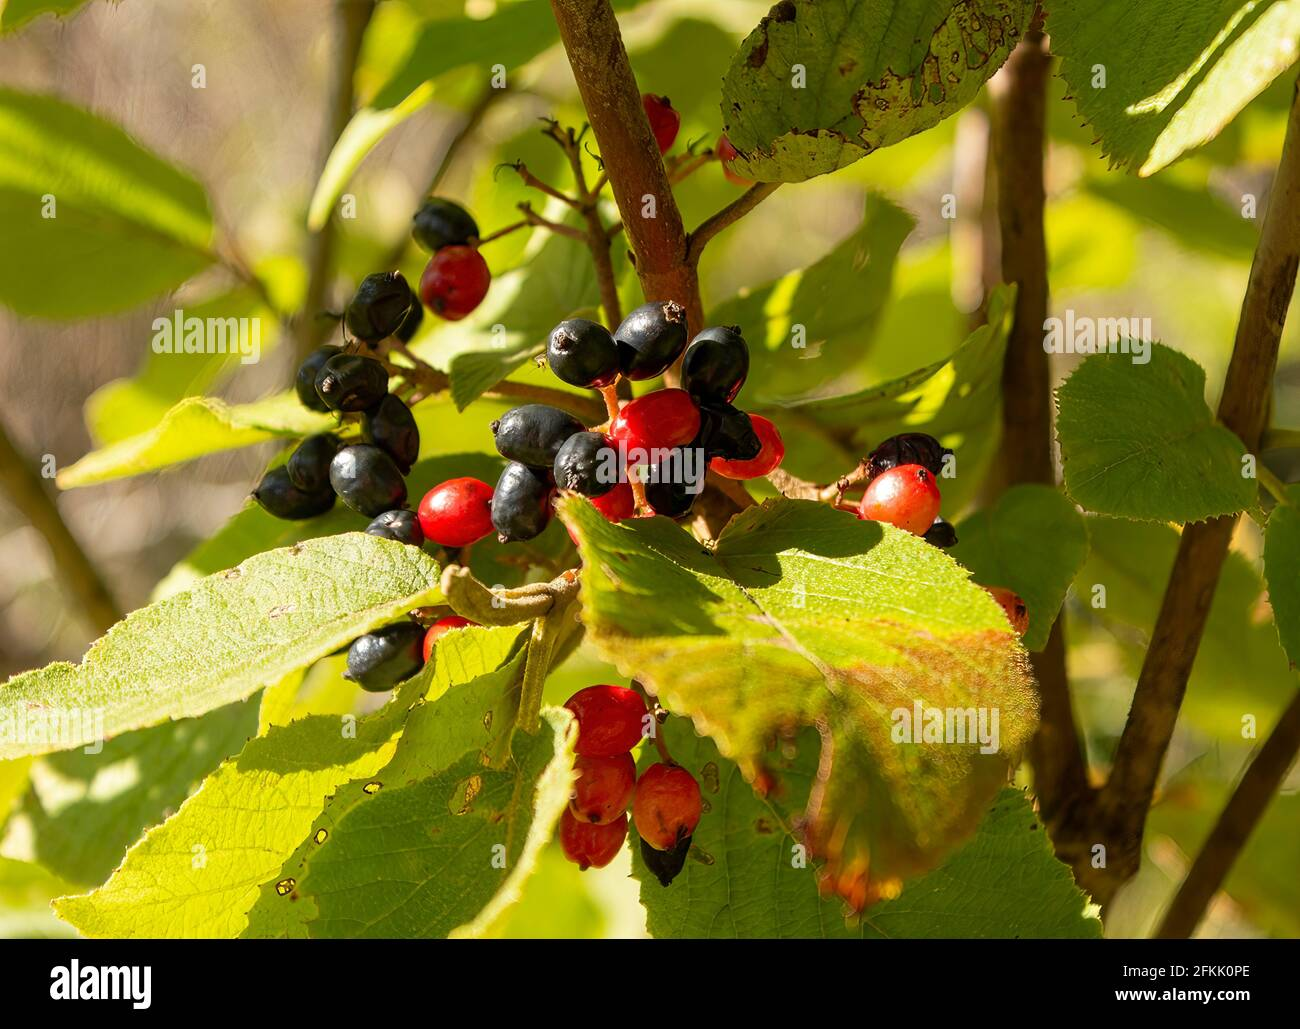 wild-berries-in-central-ontario-canada-2